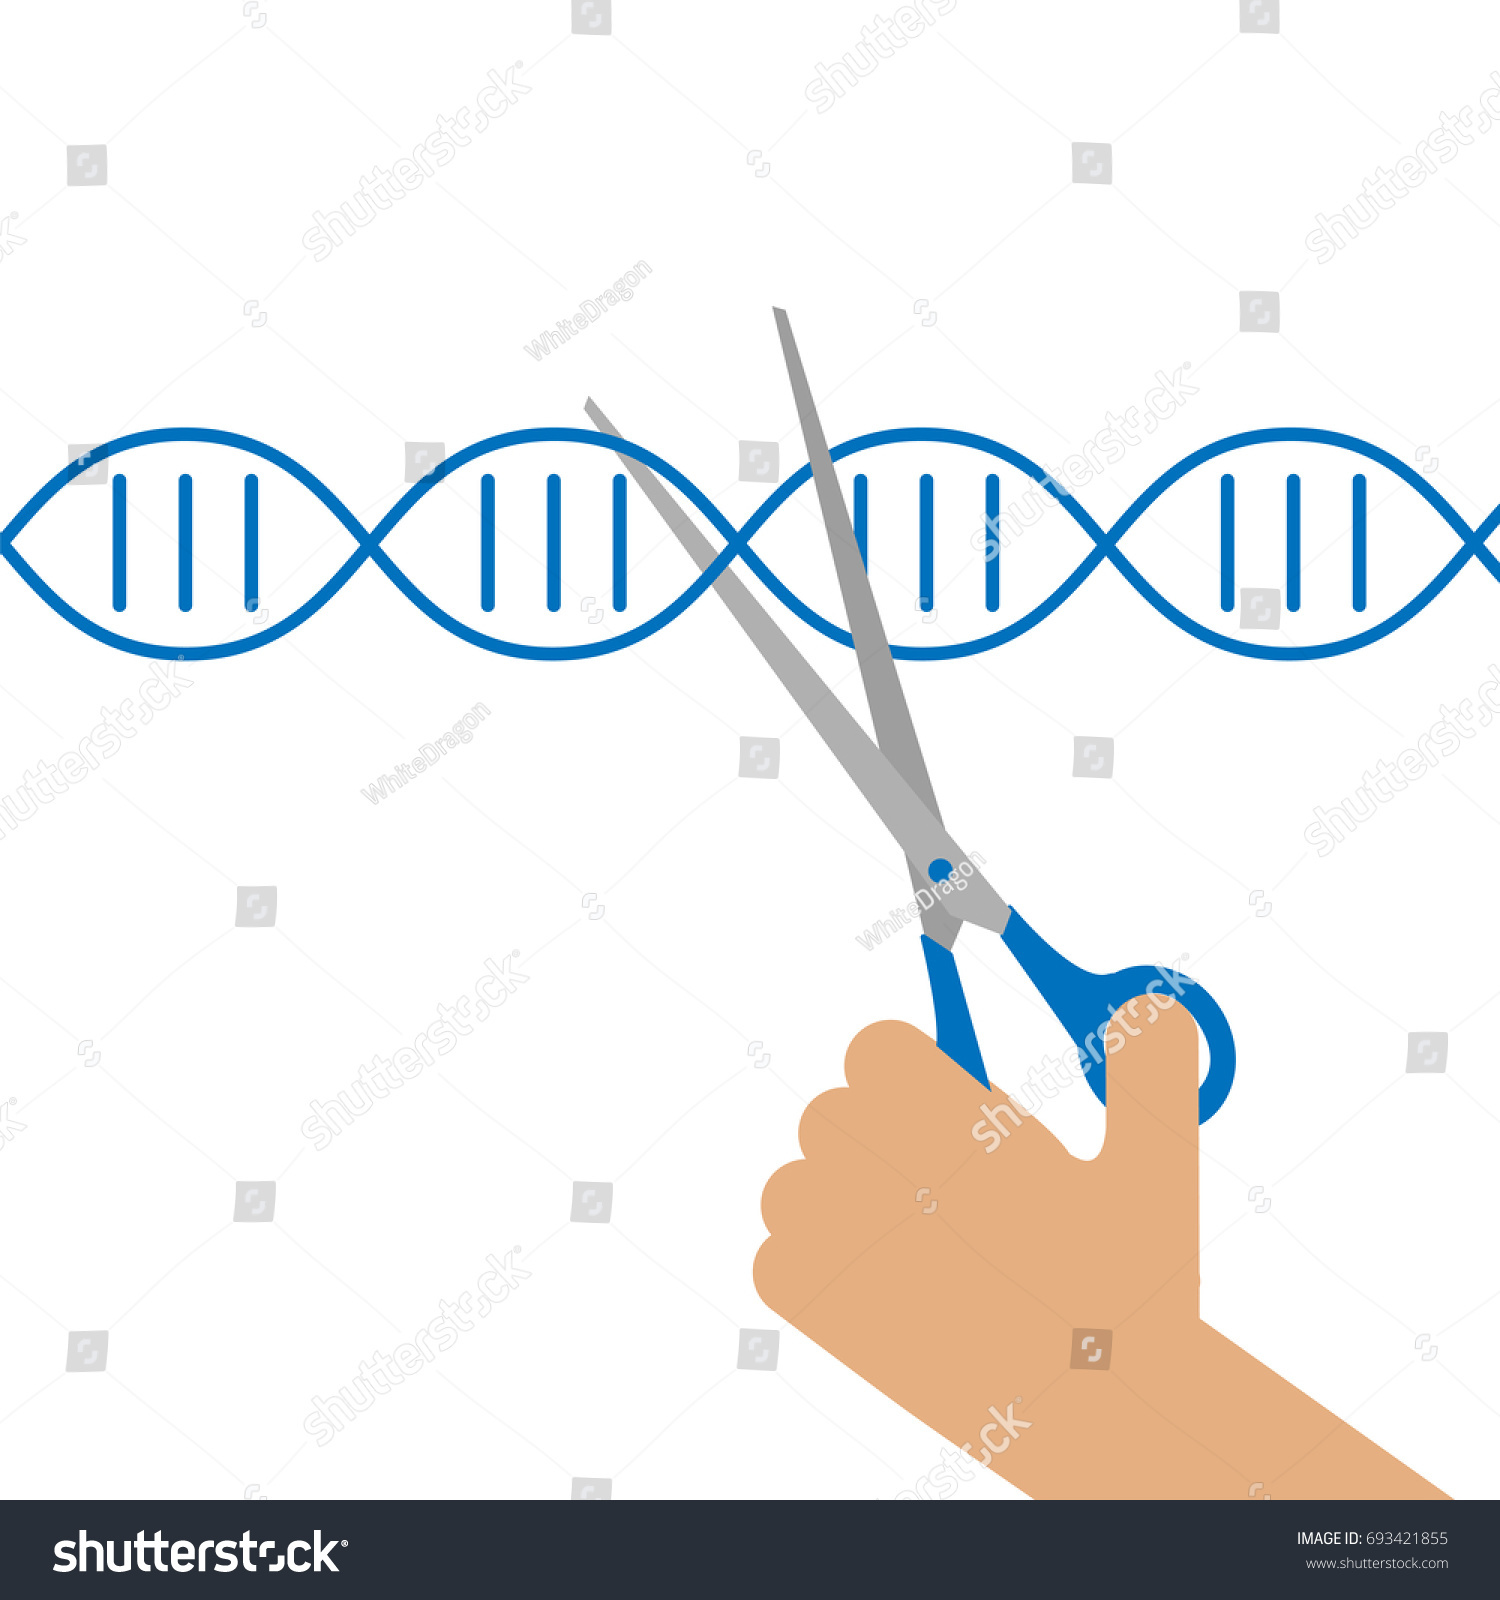 Dna Structure Stock Vector Illustration Of Helix Cell Manual Guide